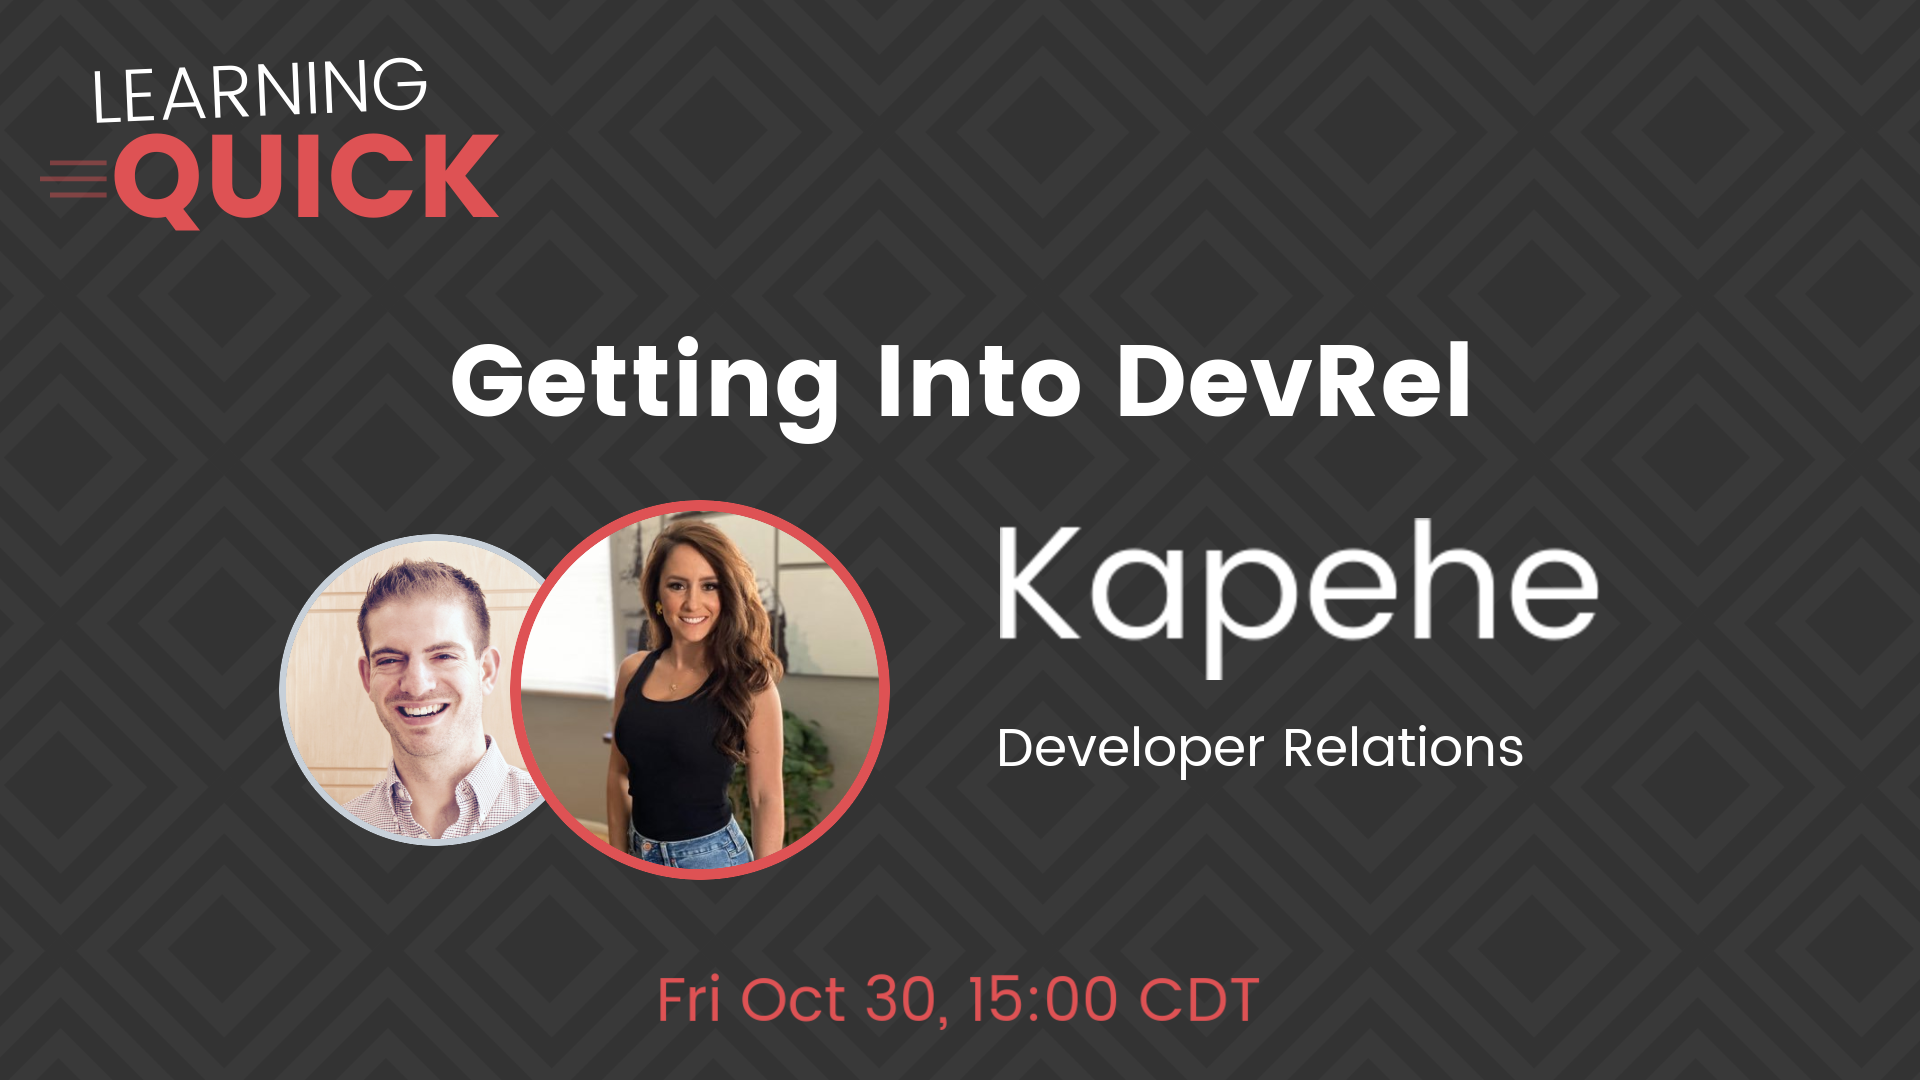 Getting Into DevRel with Kapehe